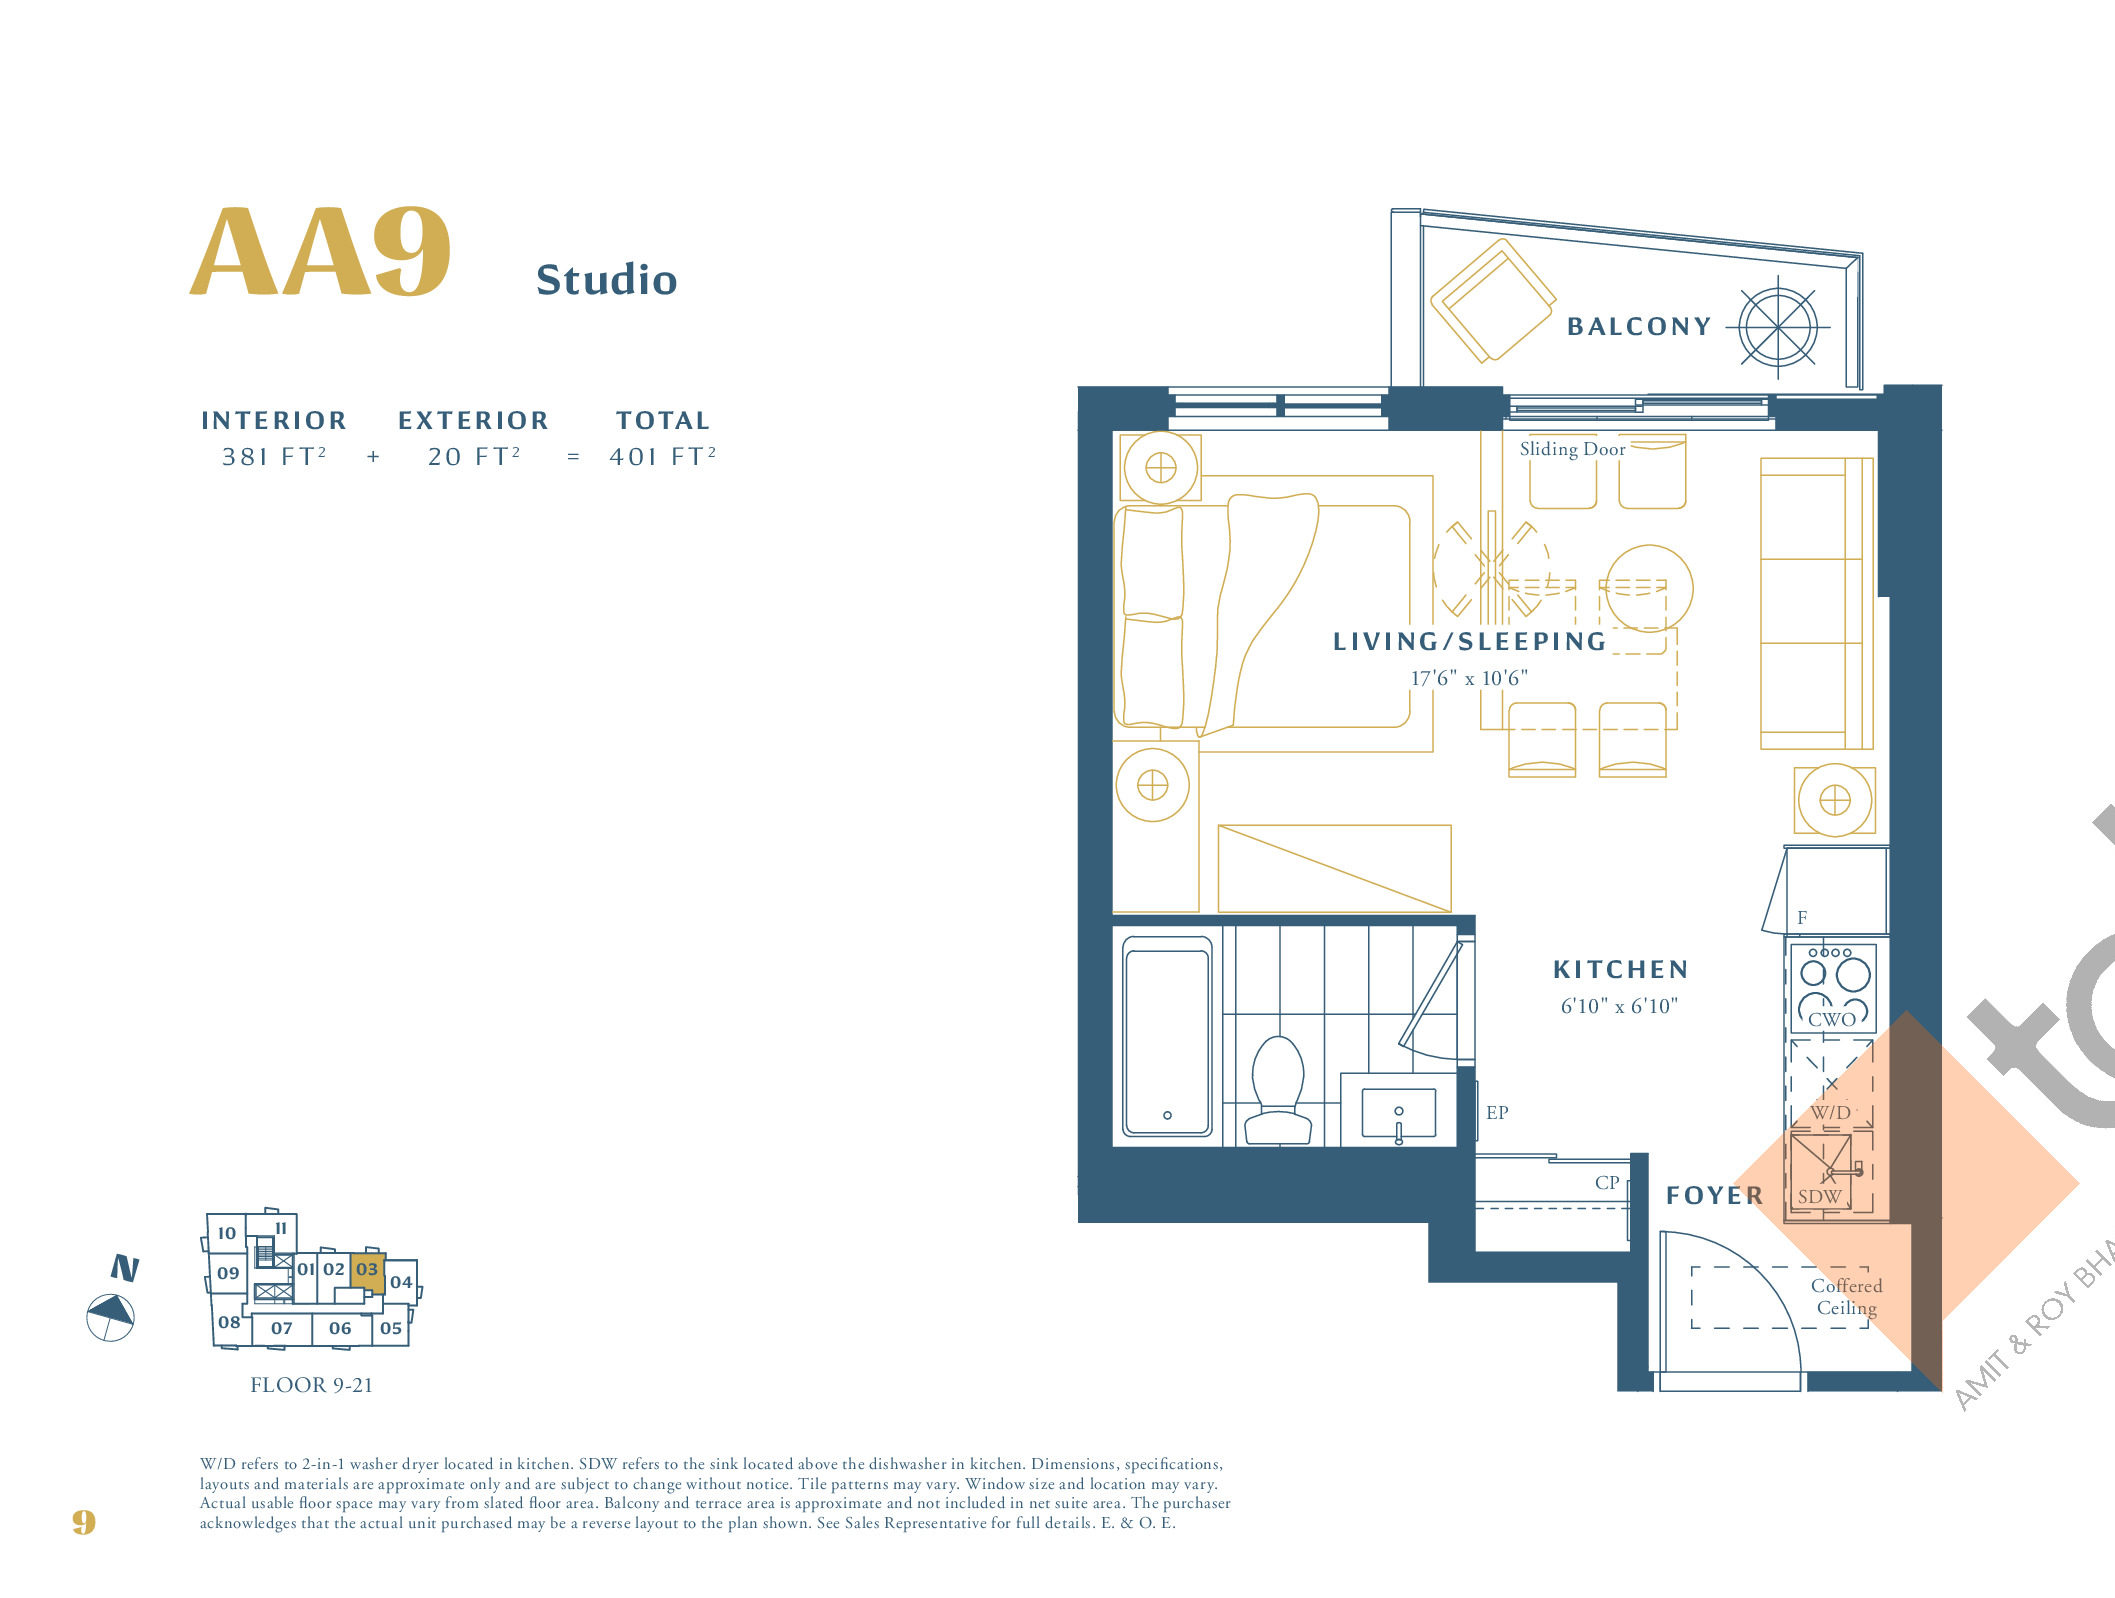 AA9 Floor Plan at The Borough Condos - Tower A - 381 sq.ft